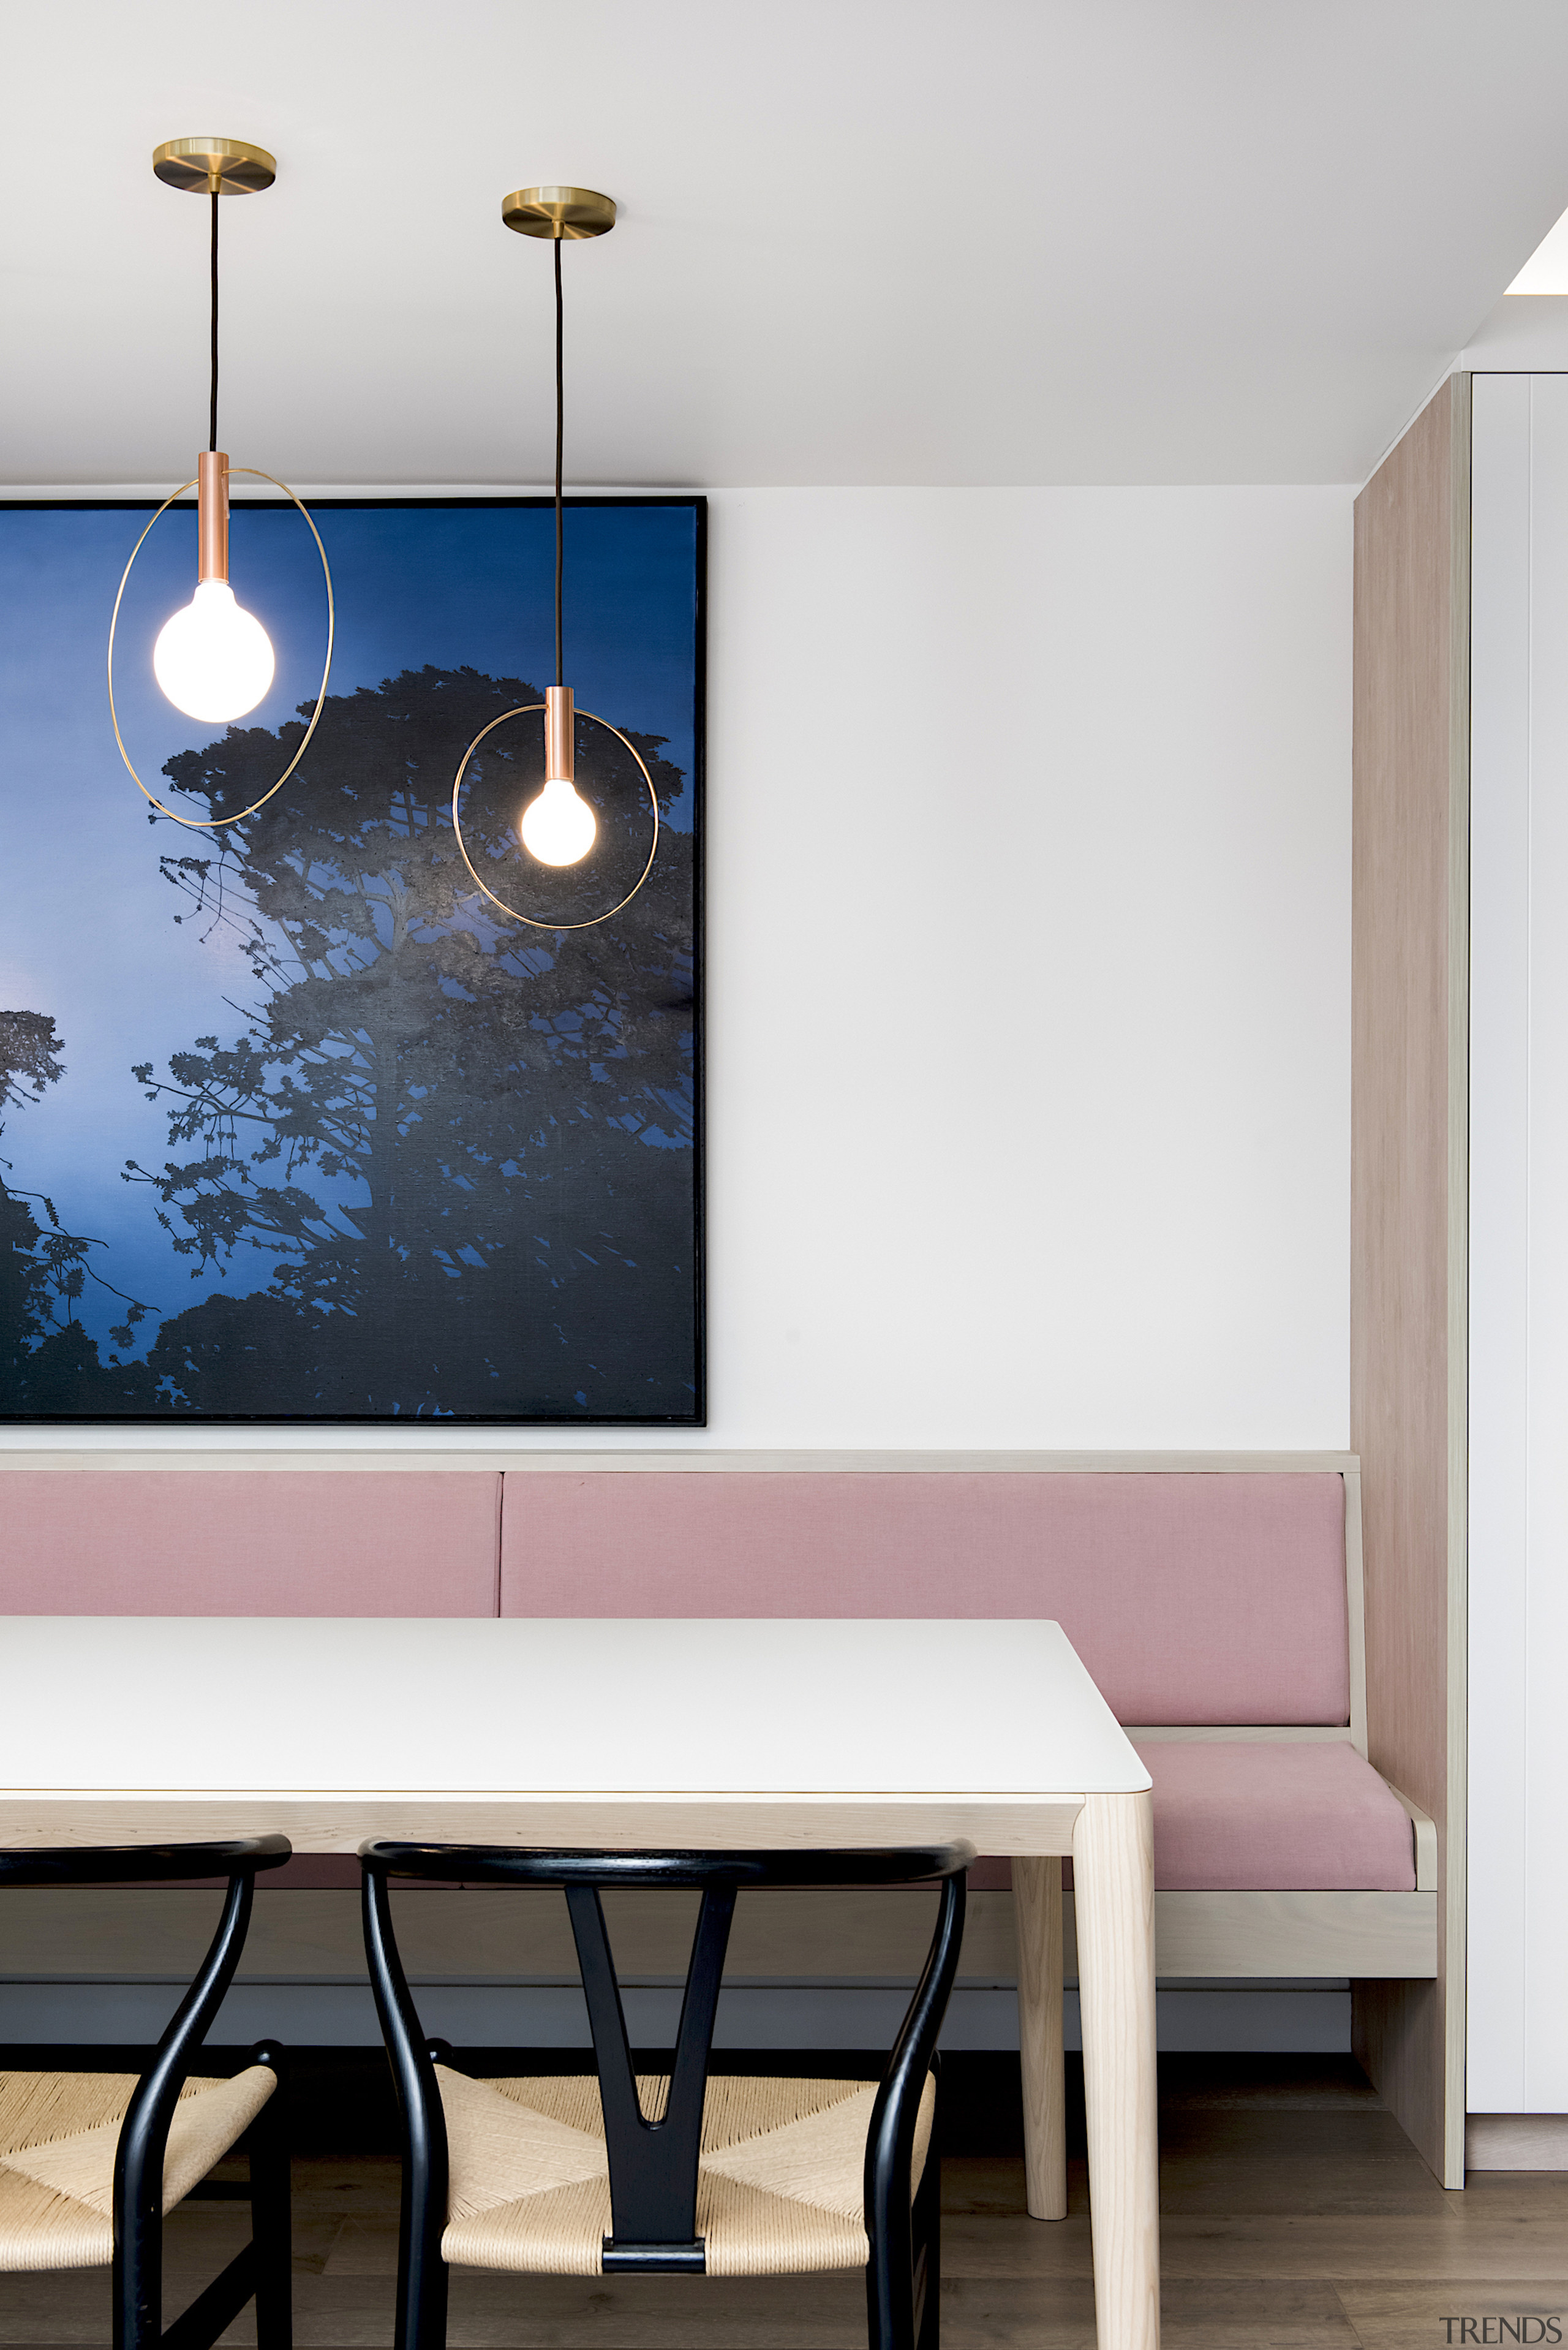 The kitchen's eye-catching pendants were designed by Minosa white